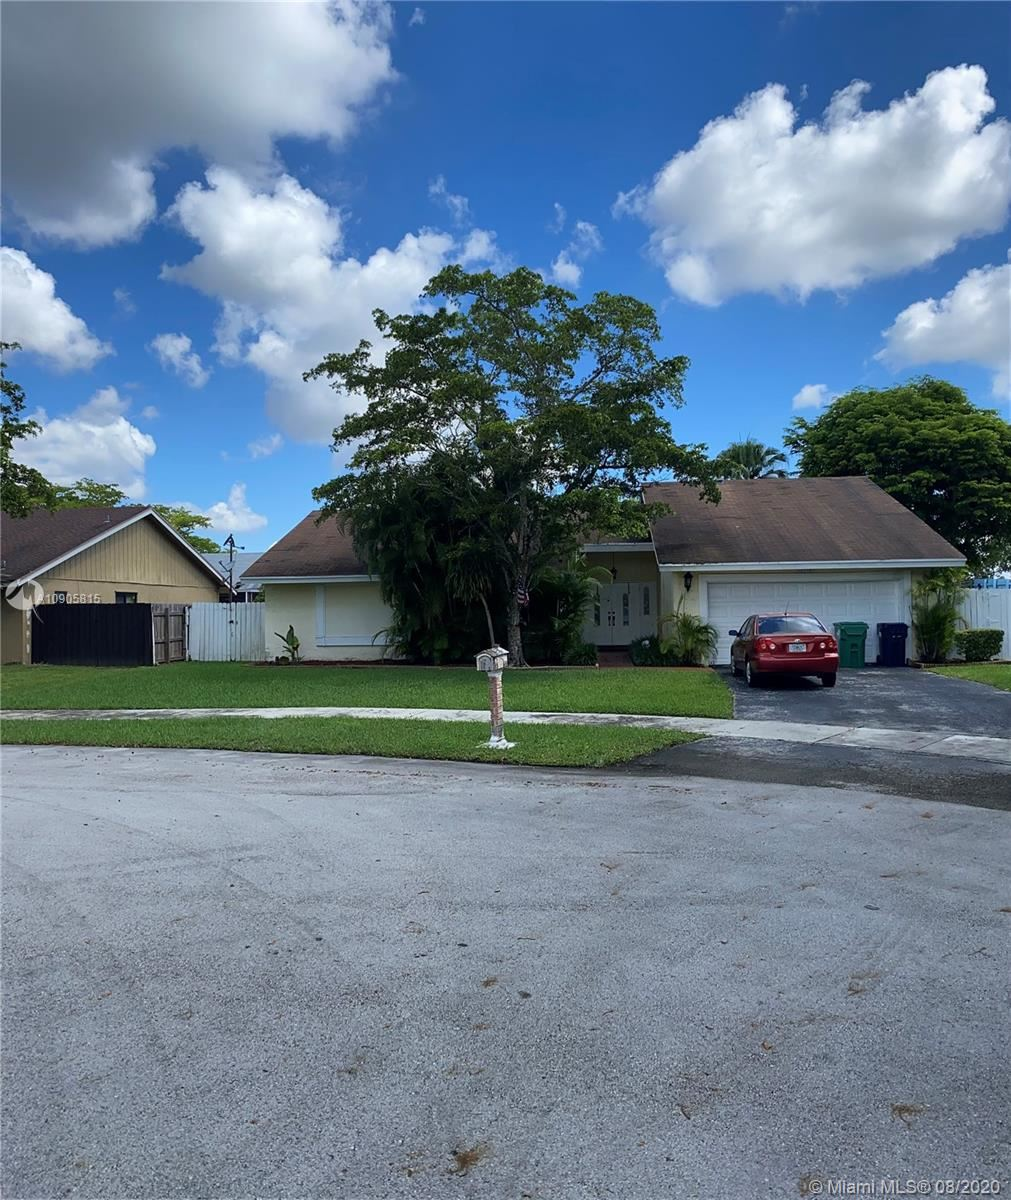 12705 SW 115th Ter, Miami, FL 33186 - #: A10905815